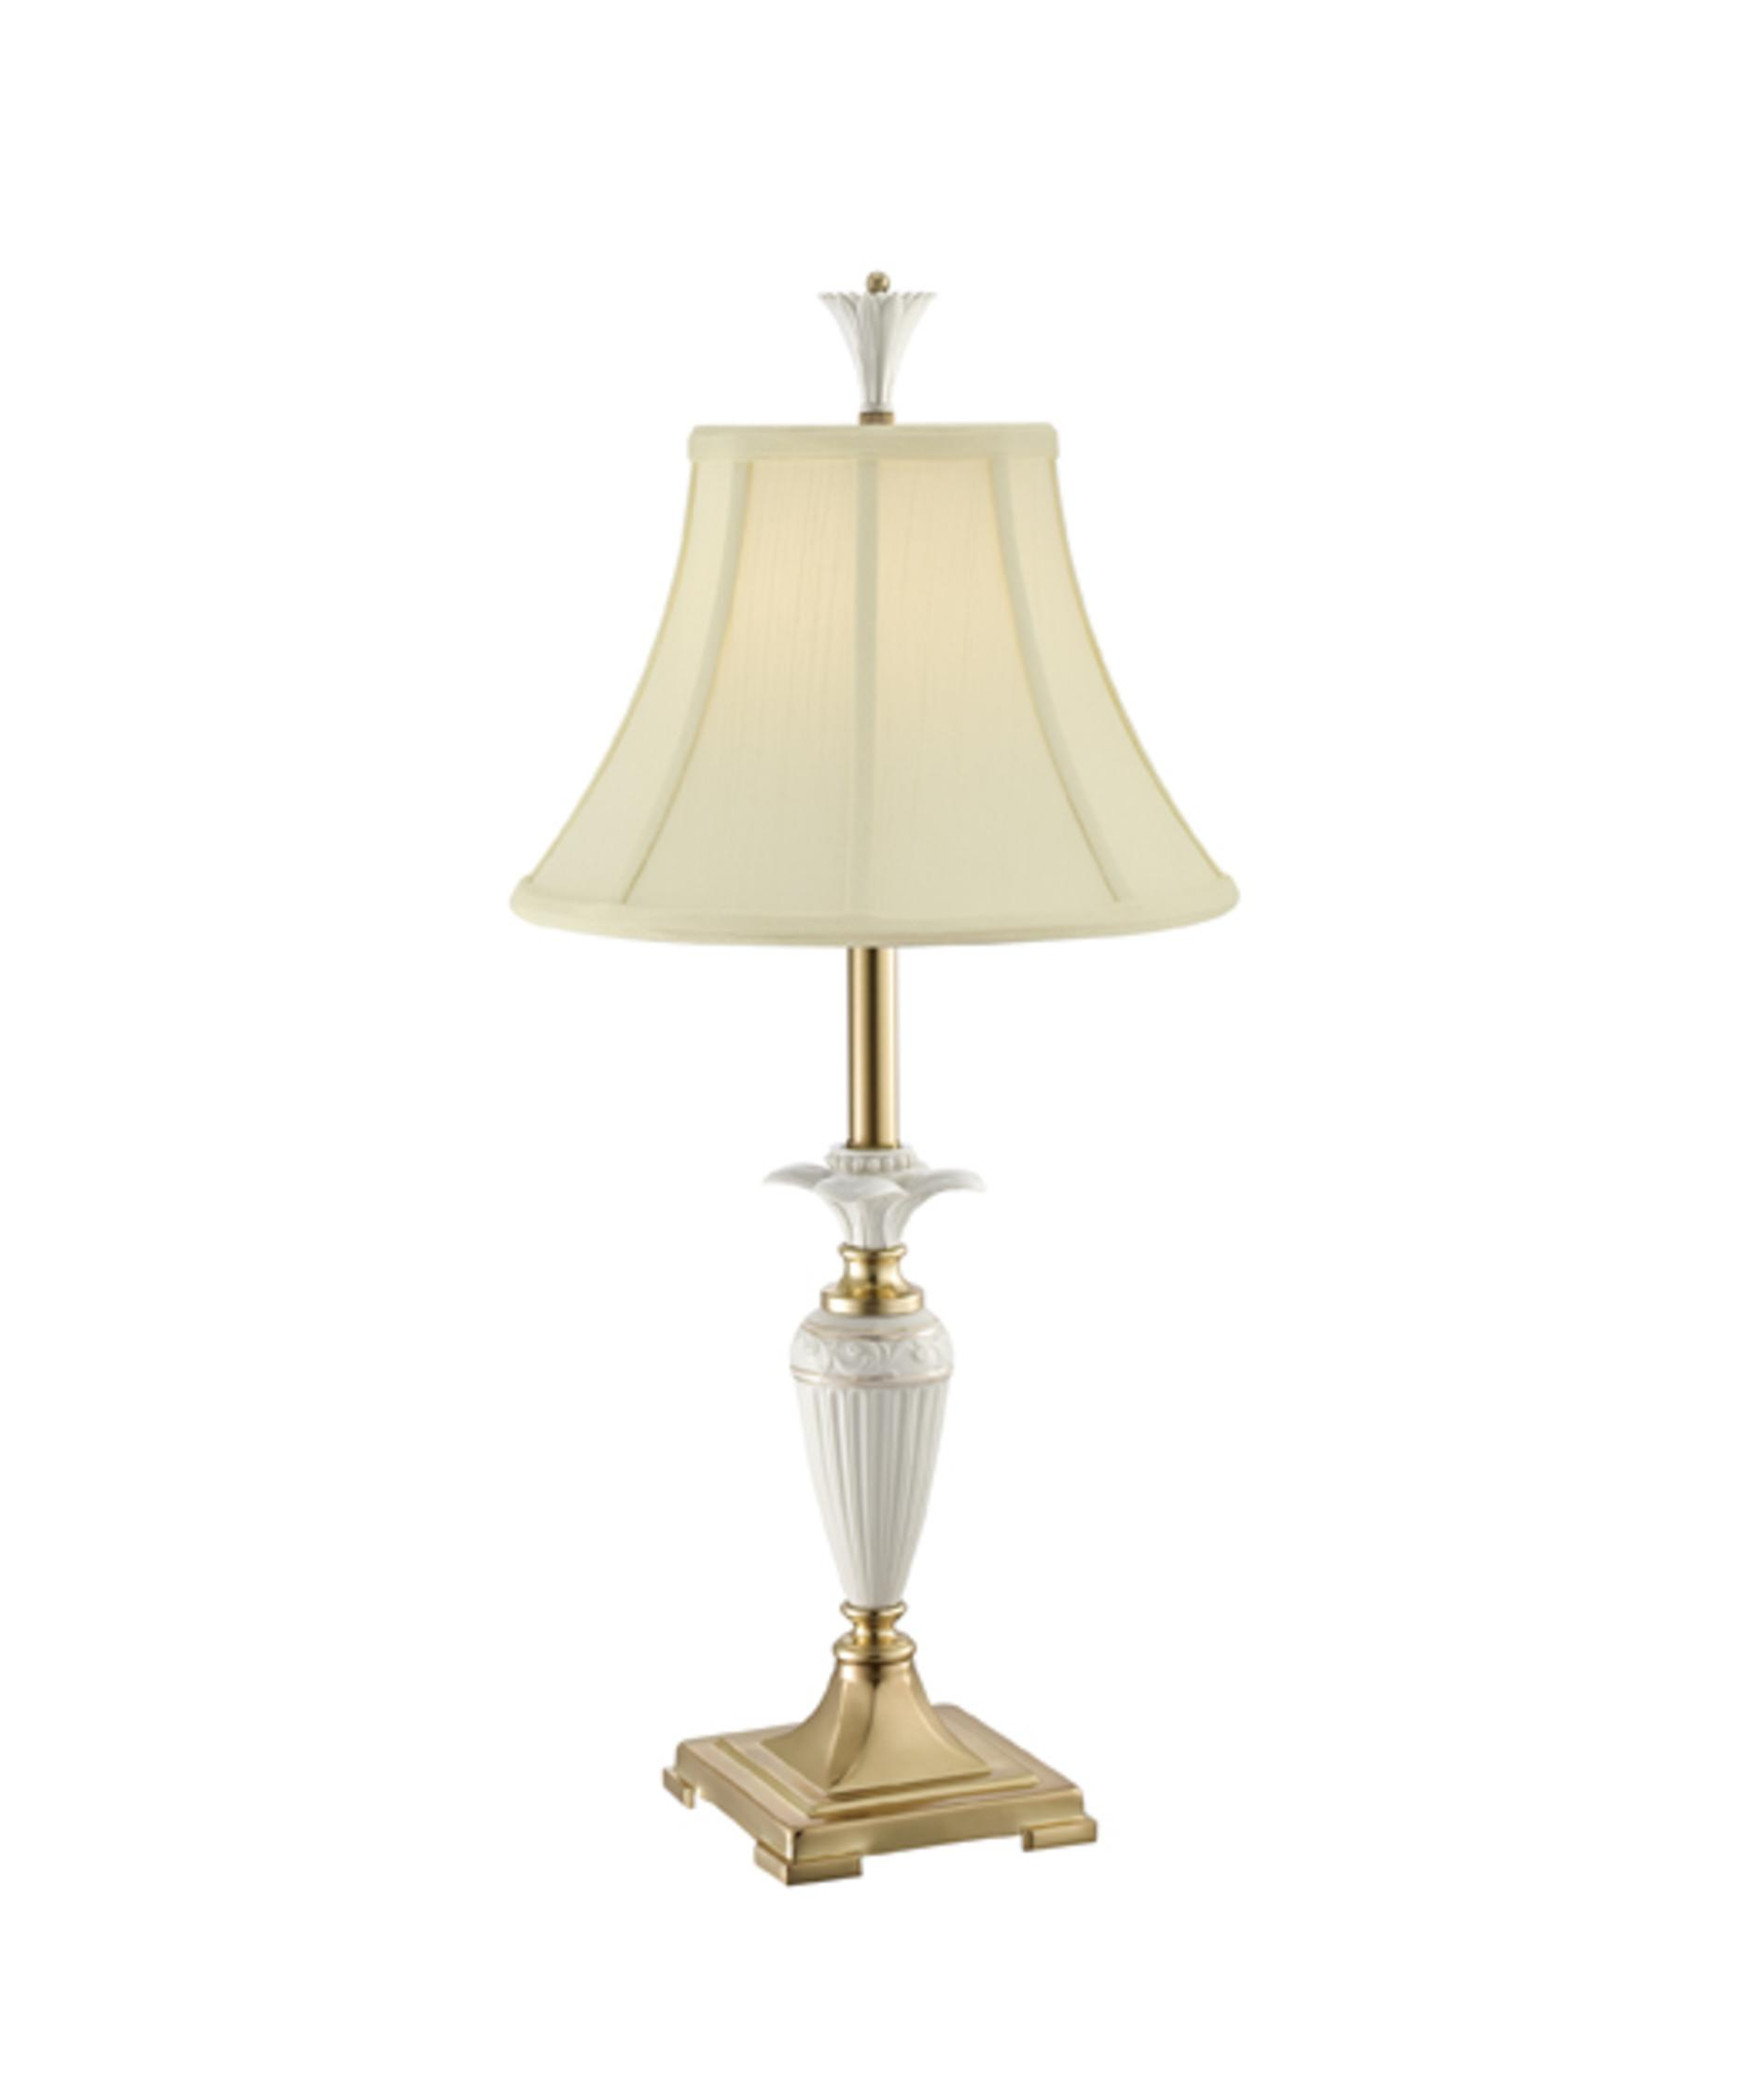 Quoizel LX23077 Lenox 26 Inch Table Lamp